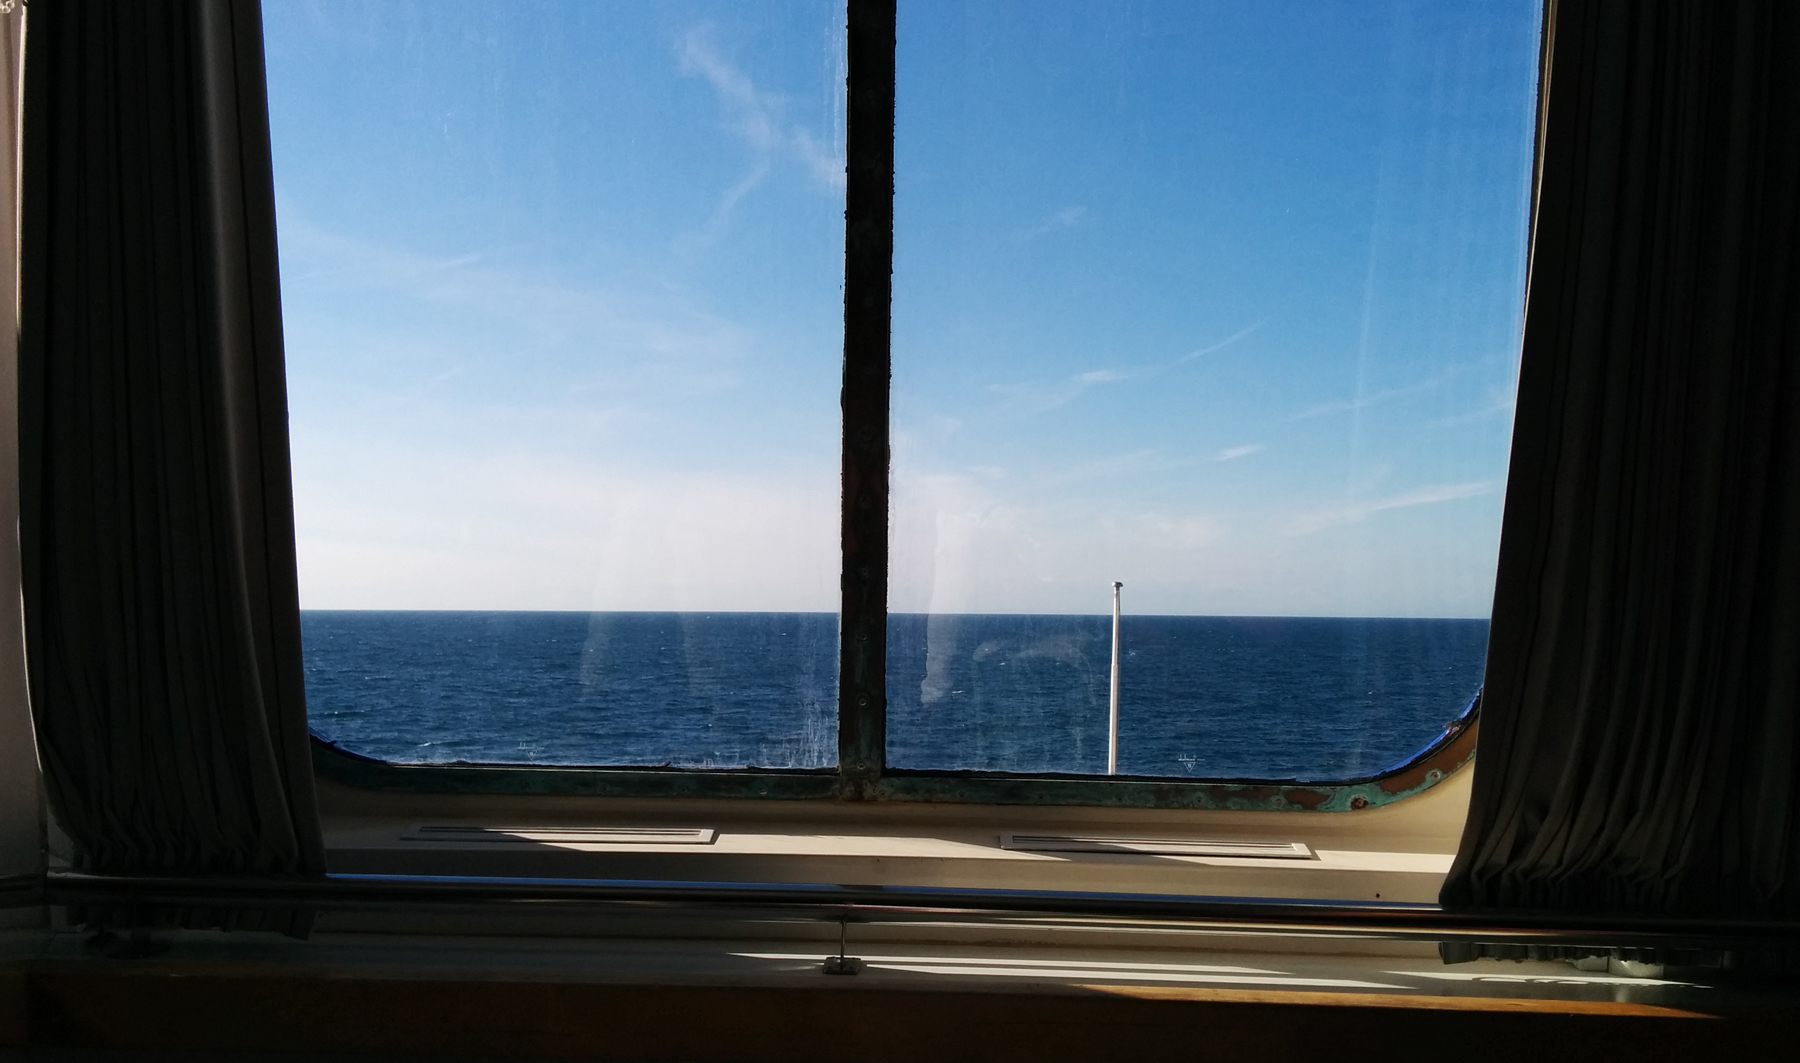 view from the ship